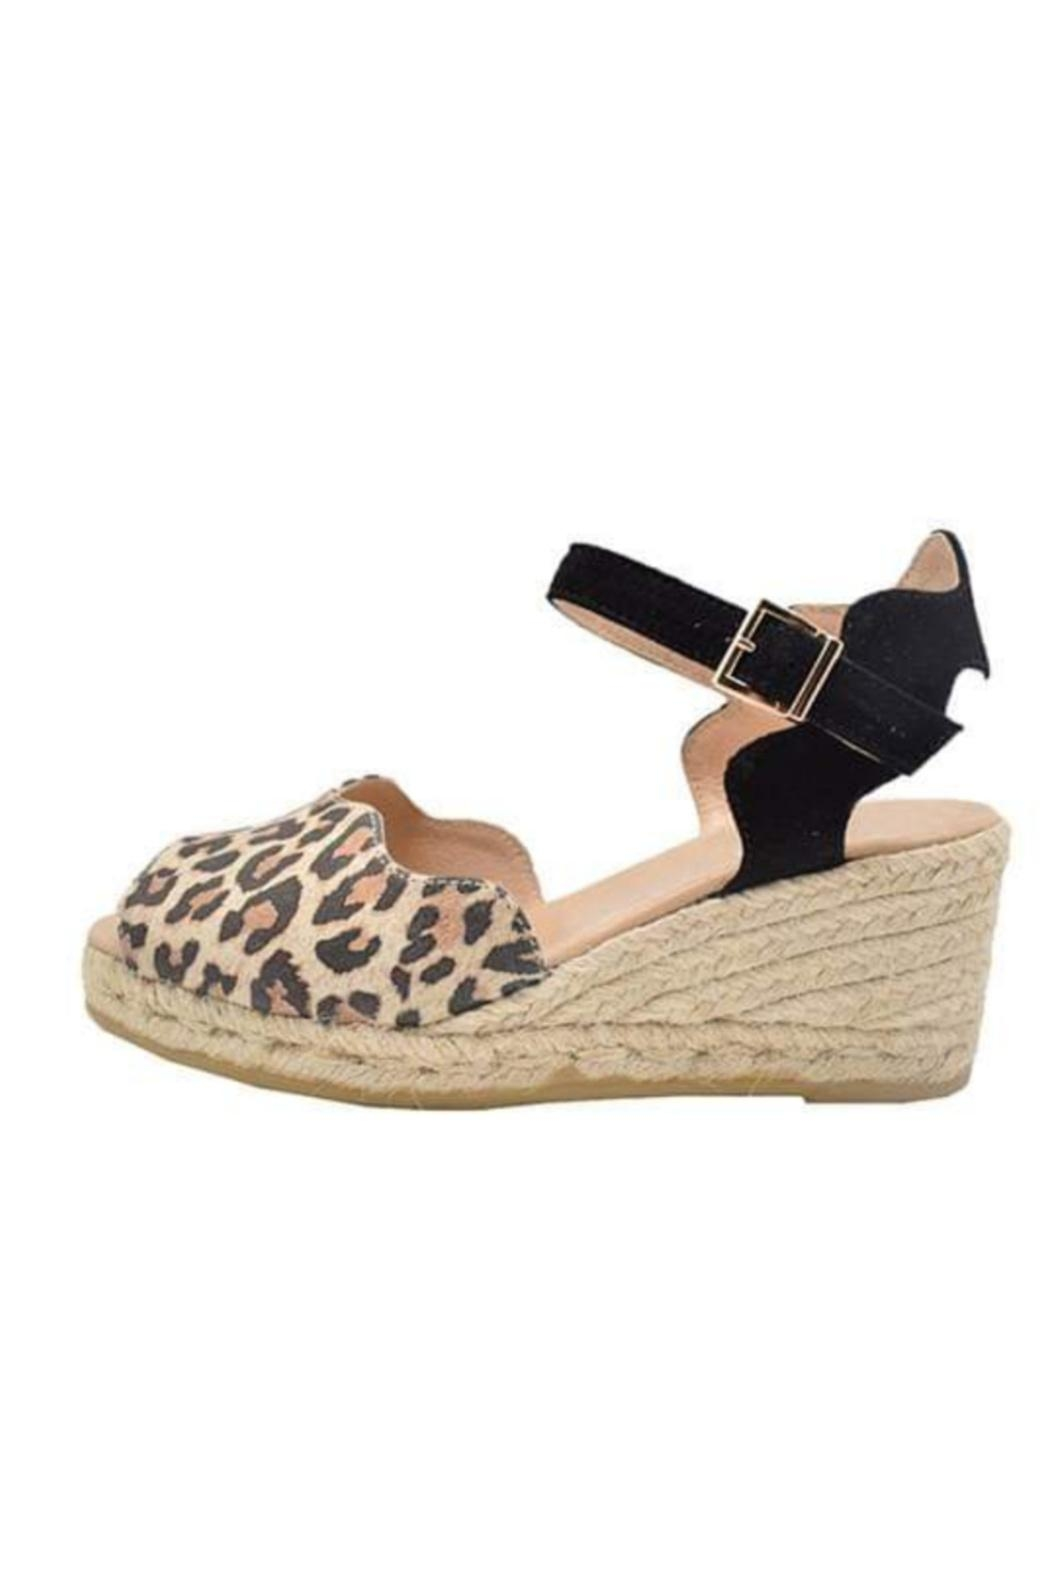 Eric Michael Leopard Espadrille - Front Cropped Image